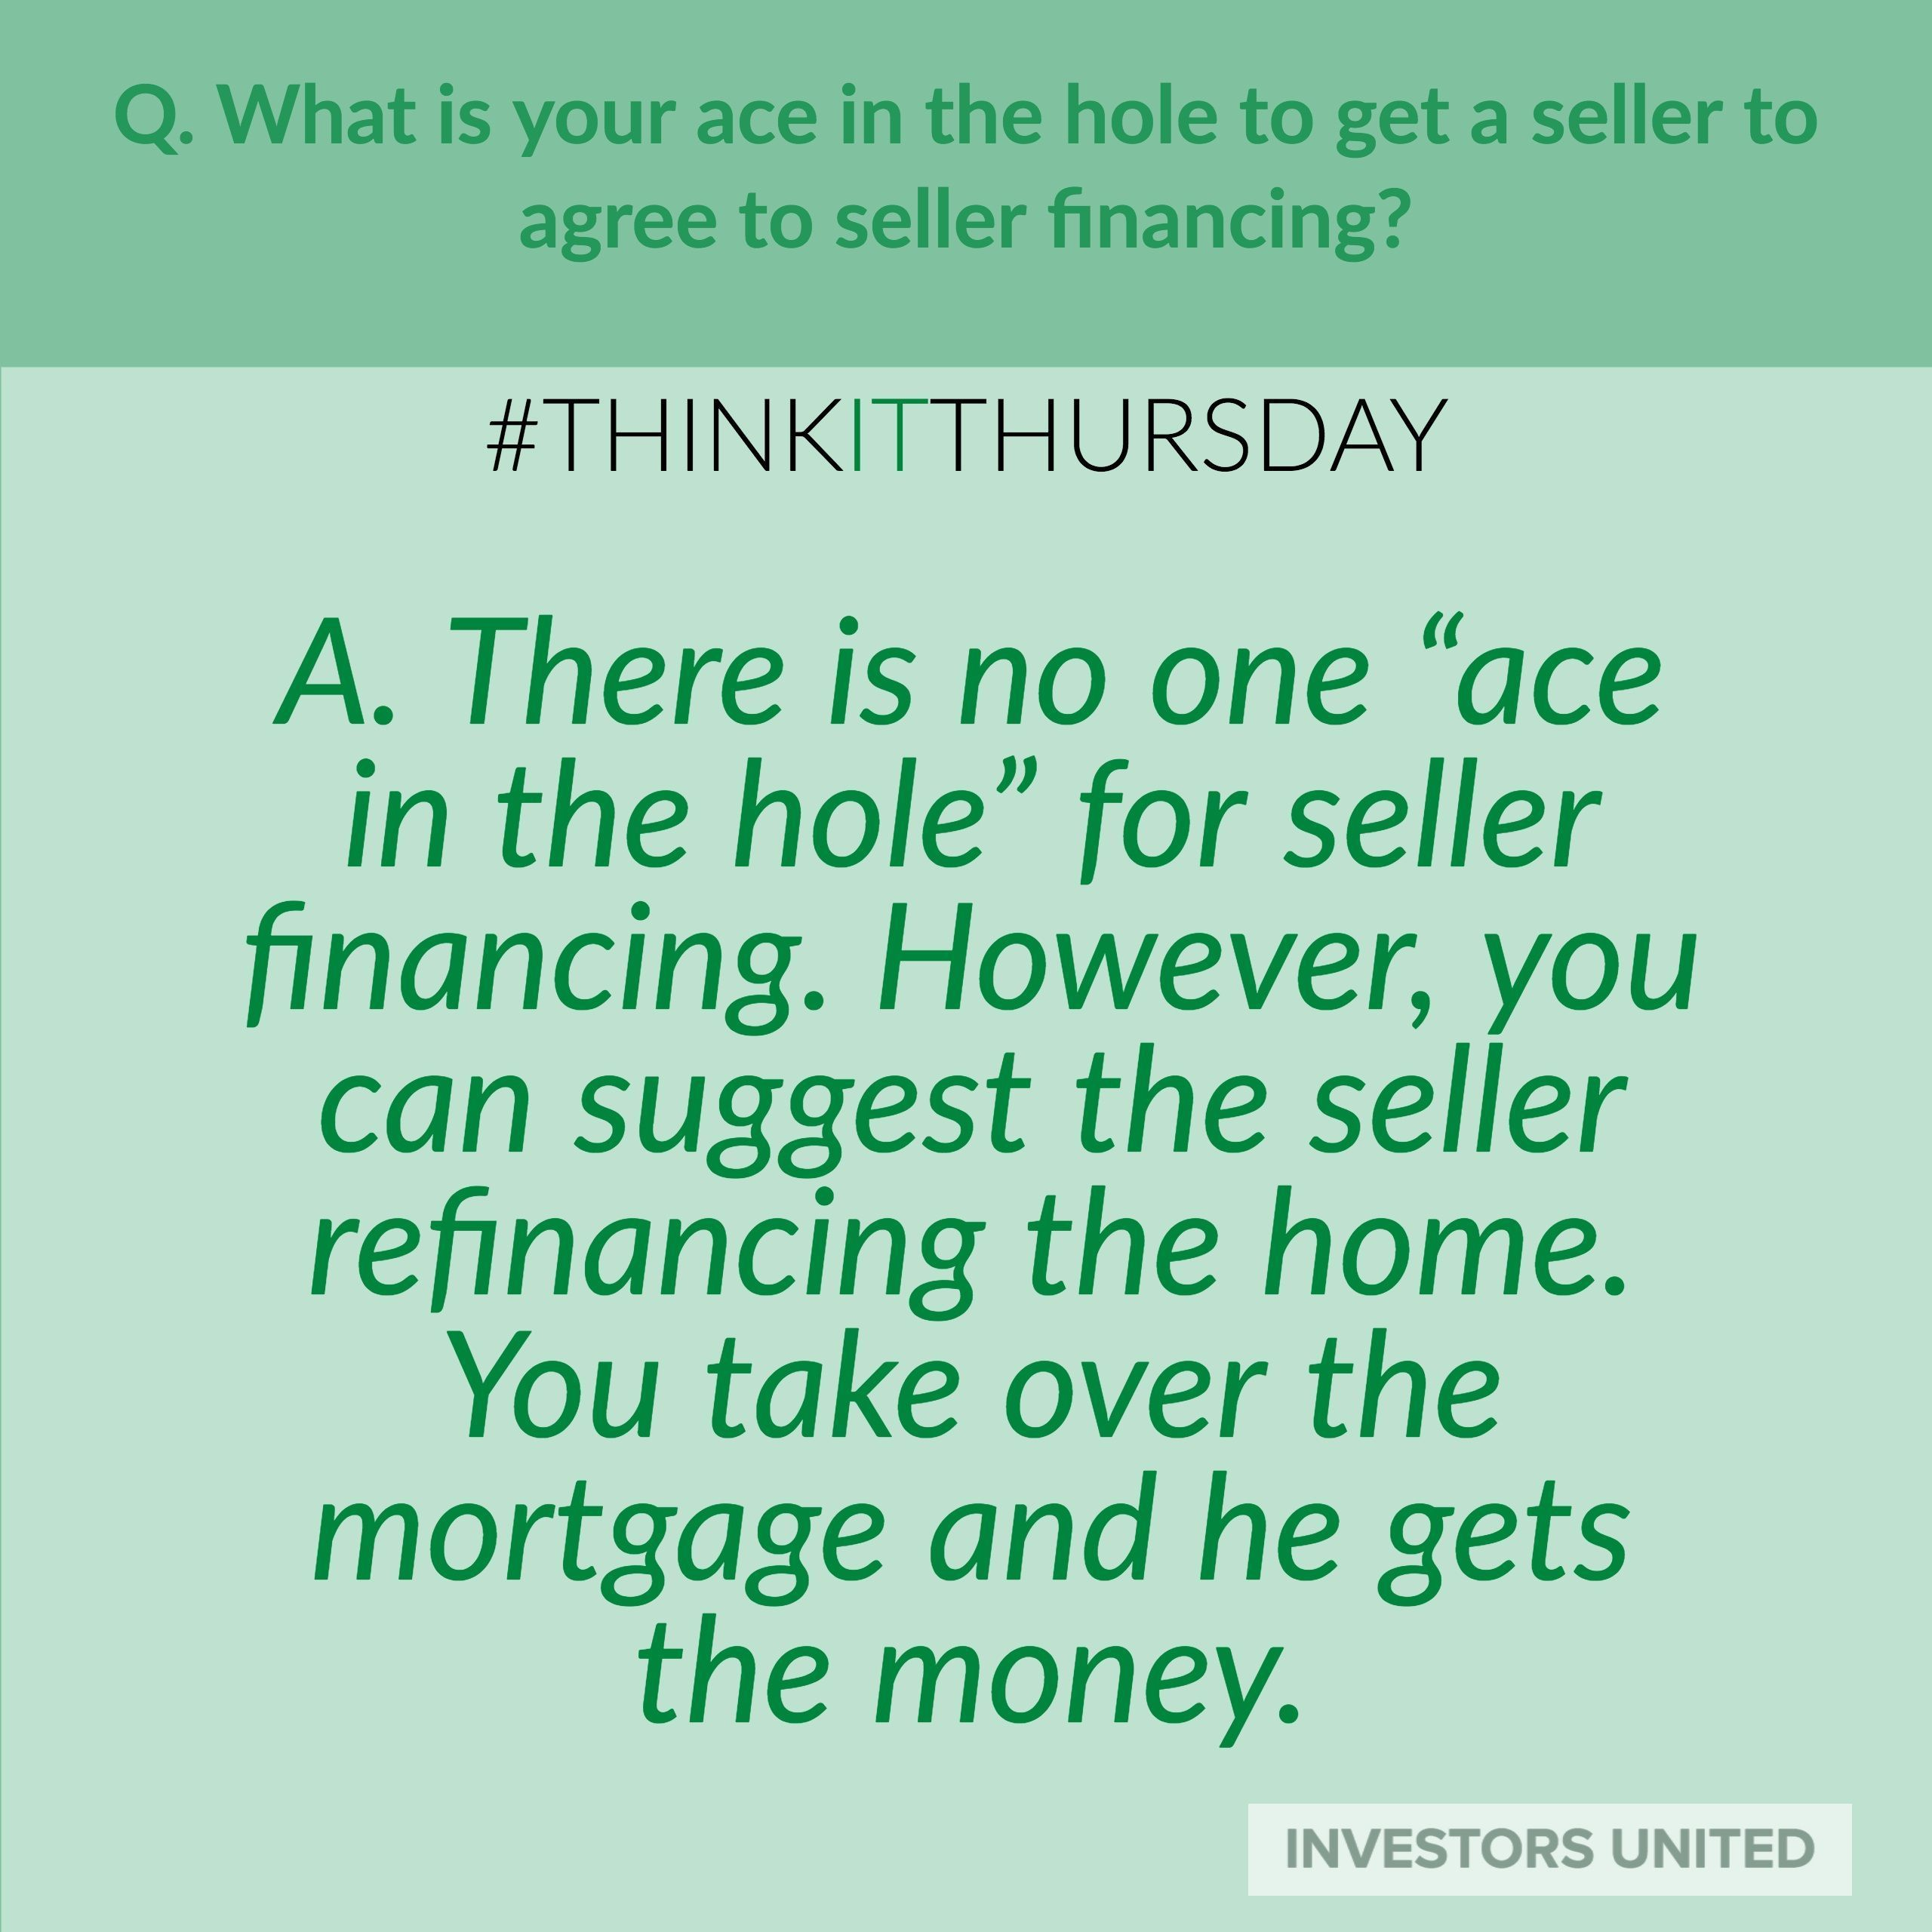 Ace in the hole, you say? There are a lot of ways to get seller financing. Here is one. Got your own questions?  Tweet them @investorsu #InvestorsUnited.com #RealEstate #RealEstateInvesting #InvestmentTraining #Investment #REI #InvestorNews #MoneyMaker #MoneyMotivation #Retirement #MoneyManagment #Entrepreneur #WorkFromHome #Cash #Money #MakeMoney #WorkForYourself #Savings #NestEgg #financenestegg Ace in the hole, you say? There are a lot of ways to get seller financing. Here is one. Got your #financenestegg